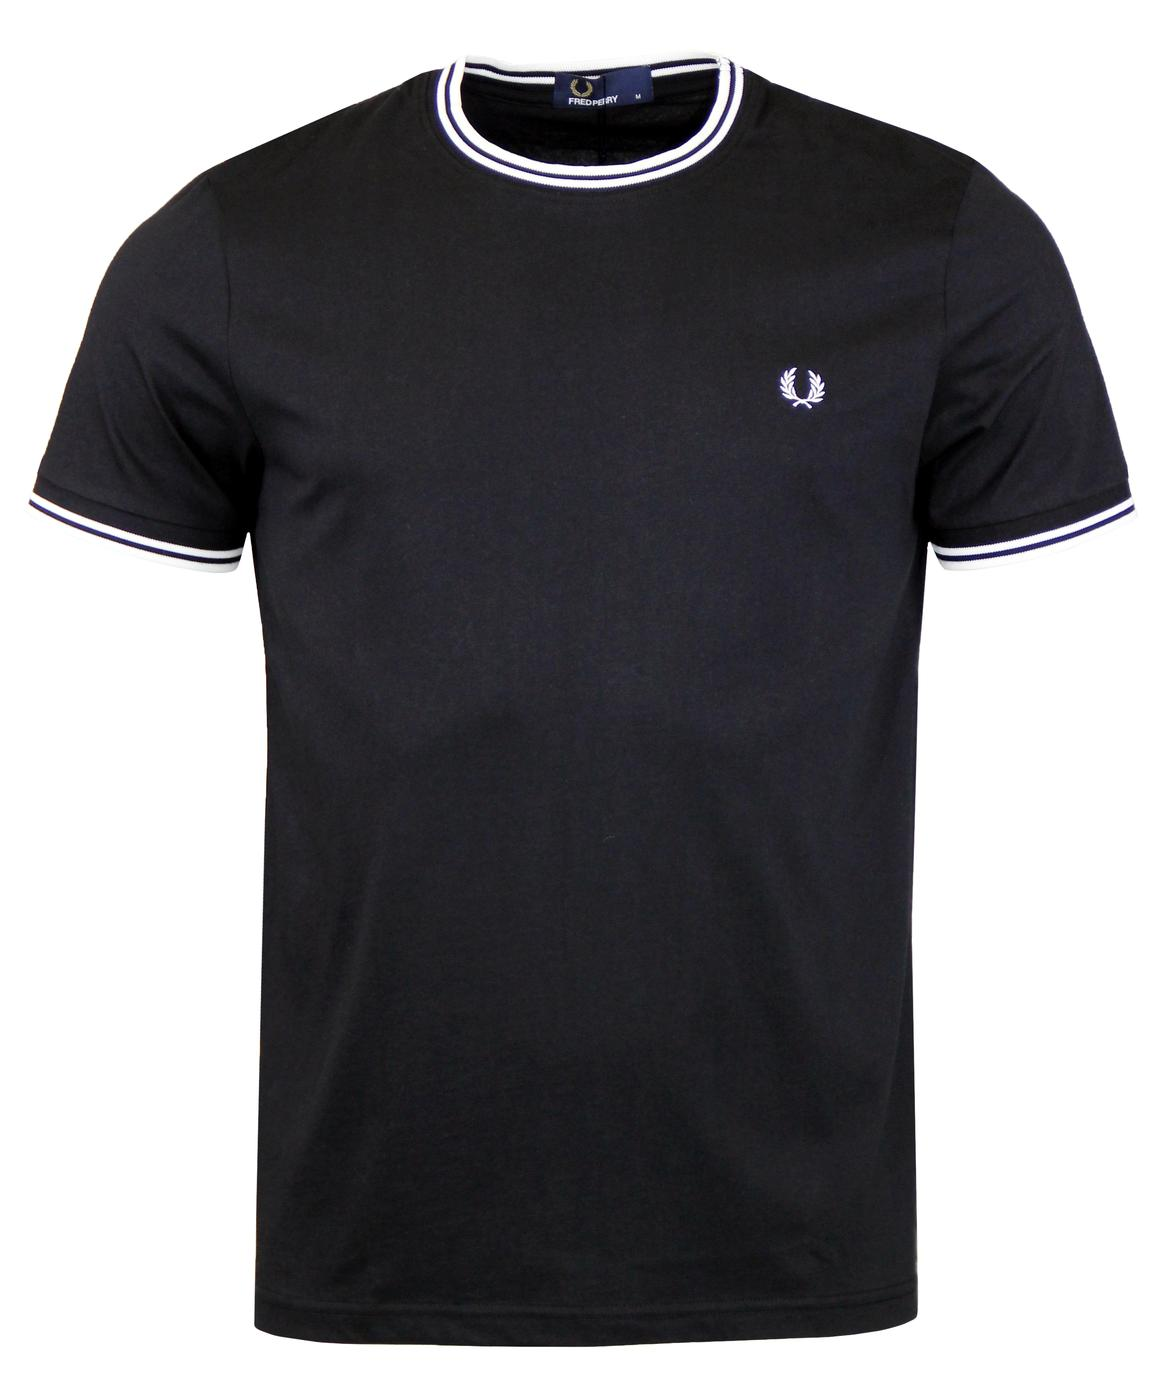 FRED PERRY Retro Twin Tipped Crew T-shirt in Black